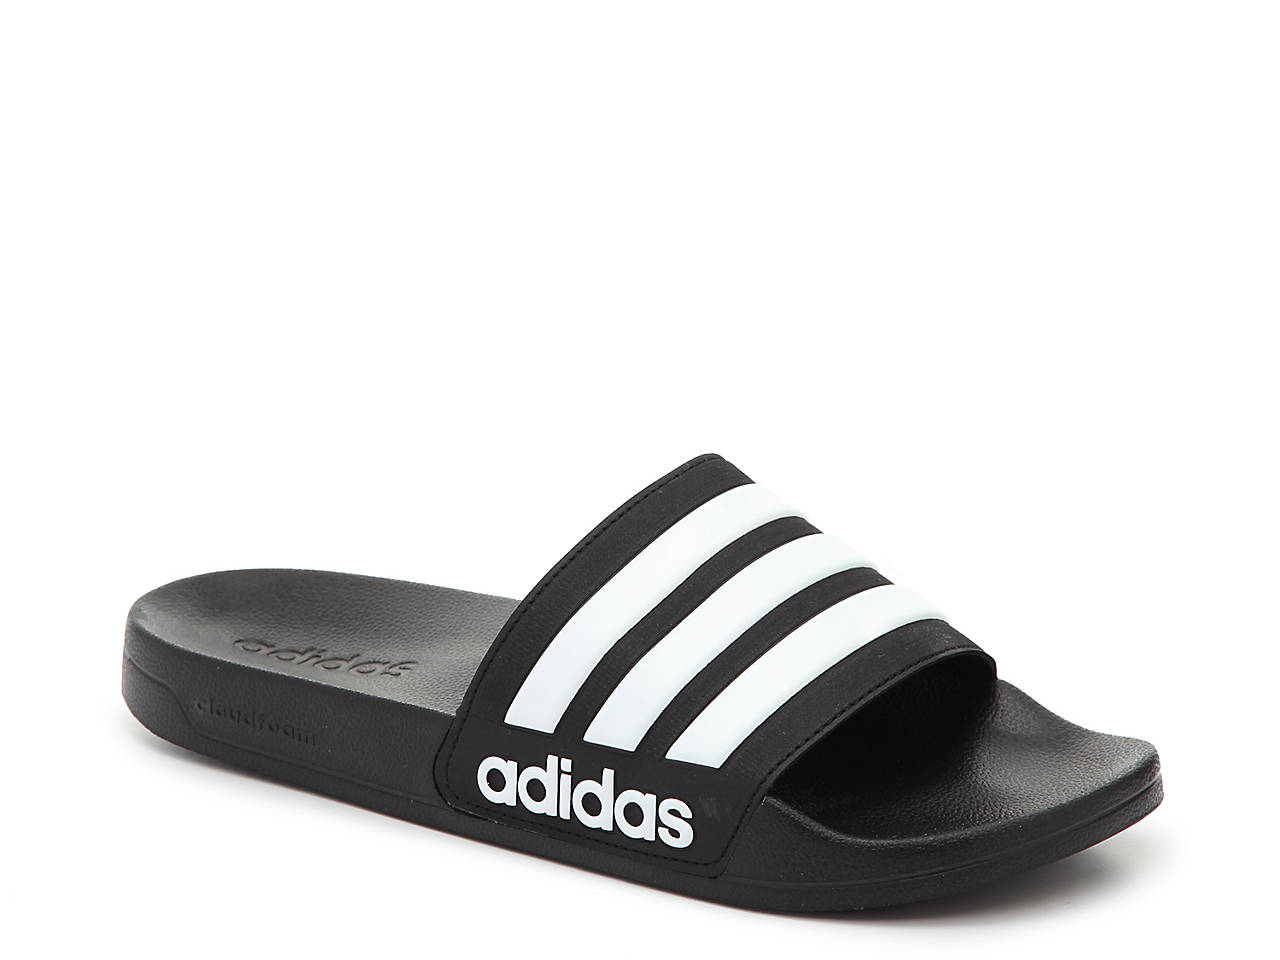 separation shoes edfad a7cd8 adidas Adilette Shower Slide Sandal - Men s Men s Shoes   DSW